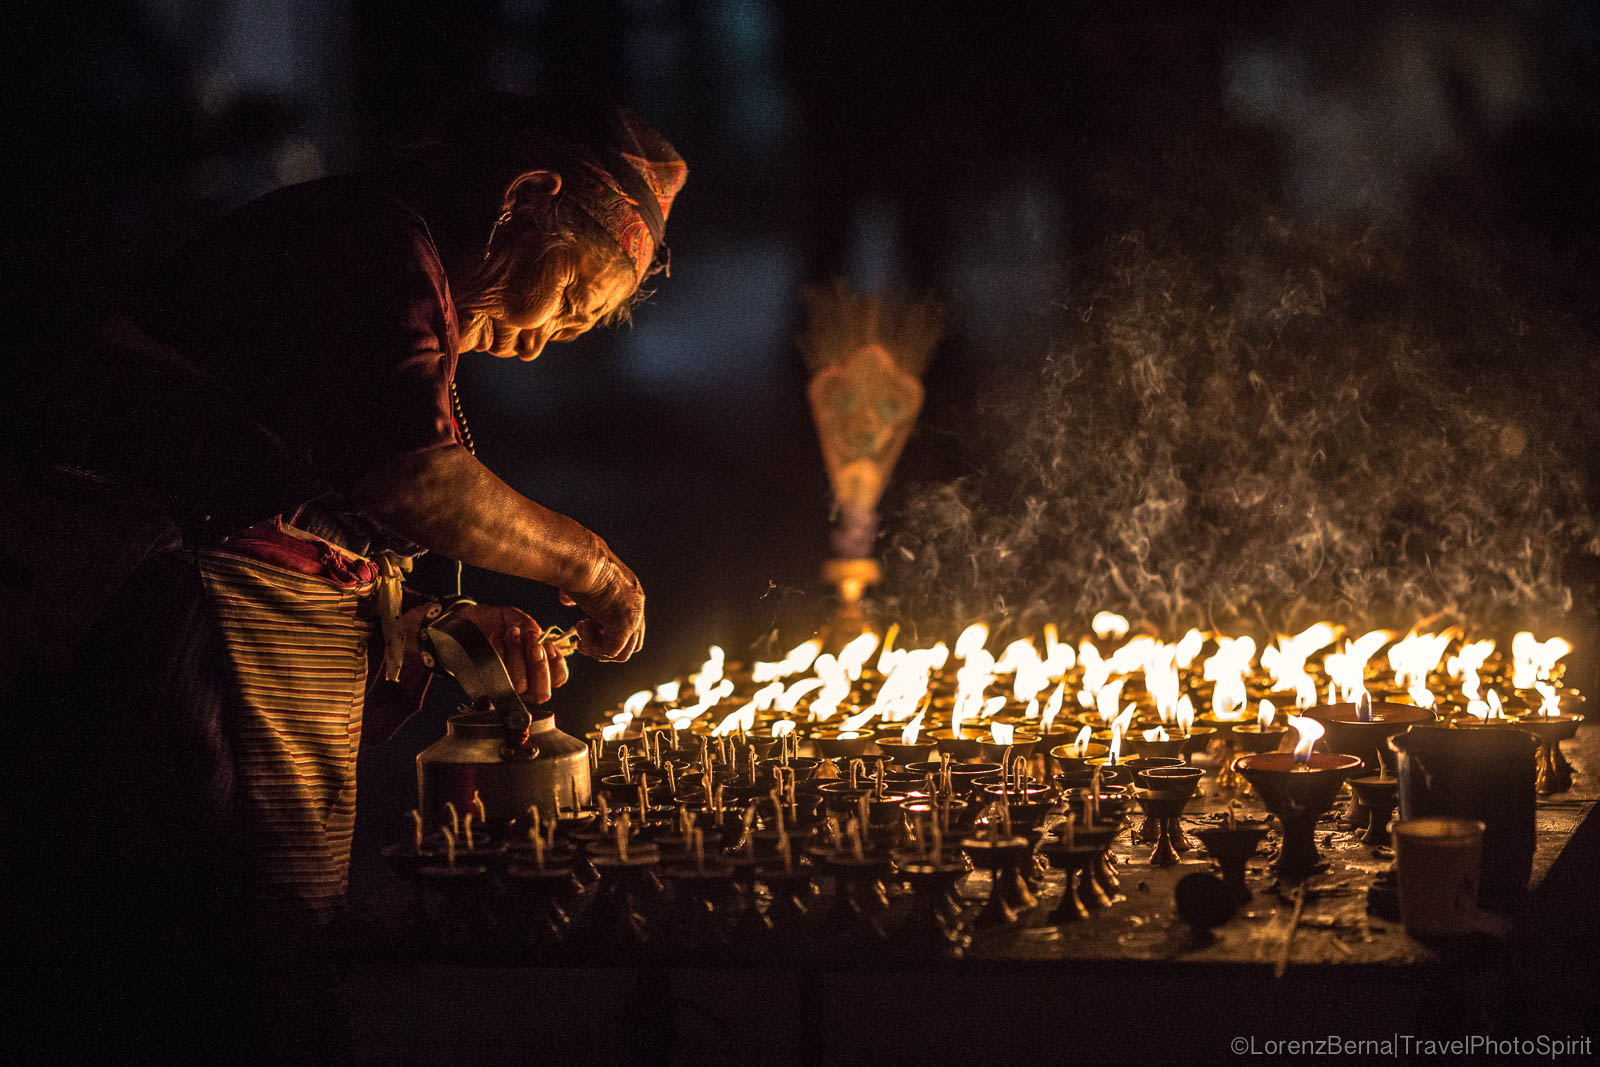 Old tibetan woman lighting candles for Losar, the Tibetan New Year - A Lorenz Berna Travel PHotography of Nepal